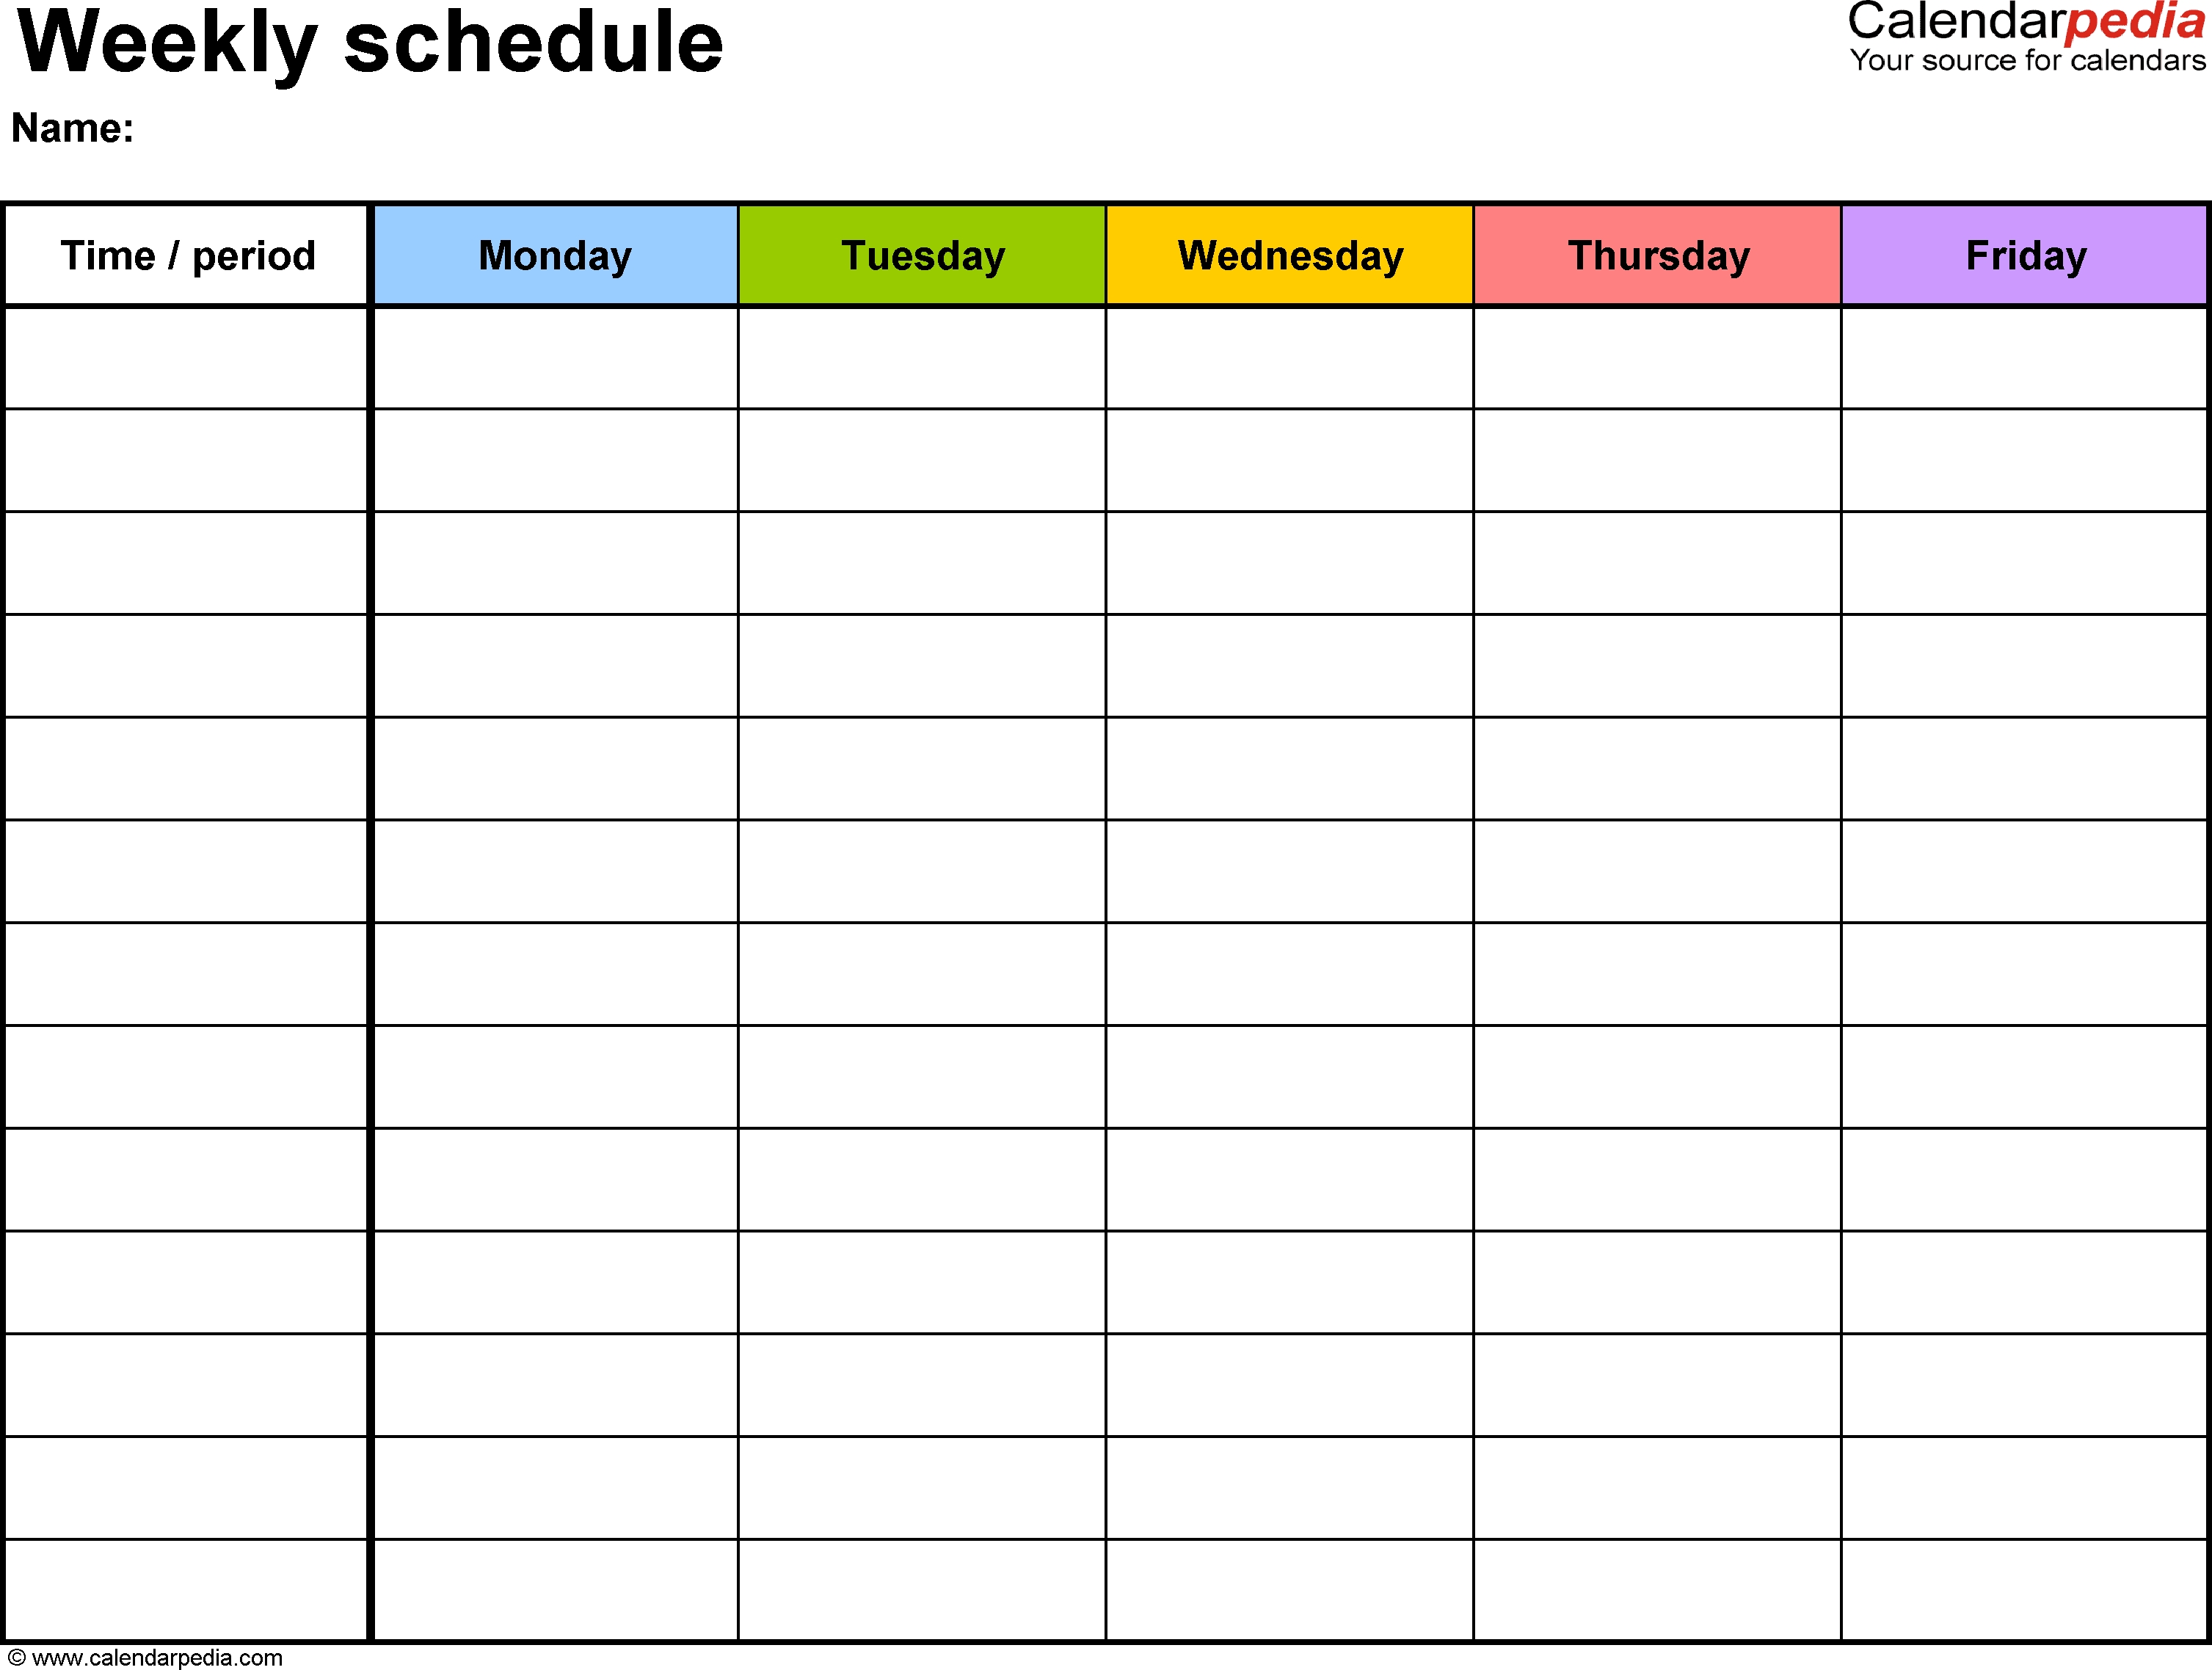 Free Weekly Schedule Templates For Word - 18 Templates inside Blank Weekly Calender With Time